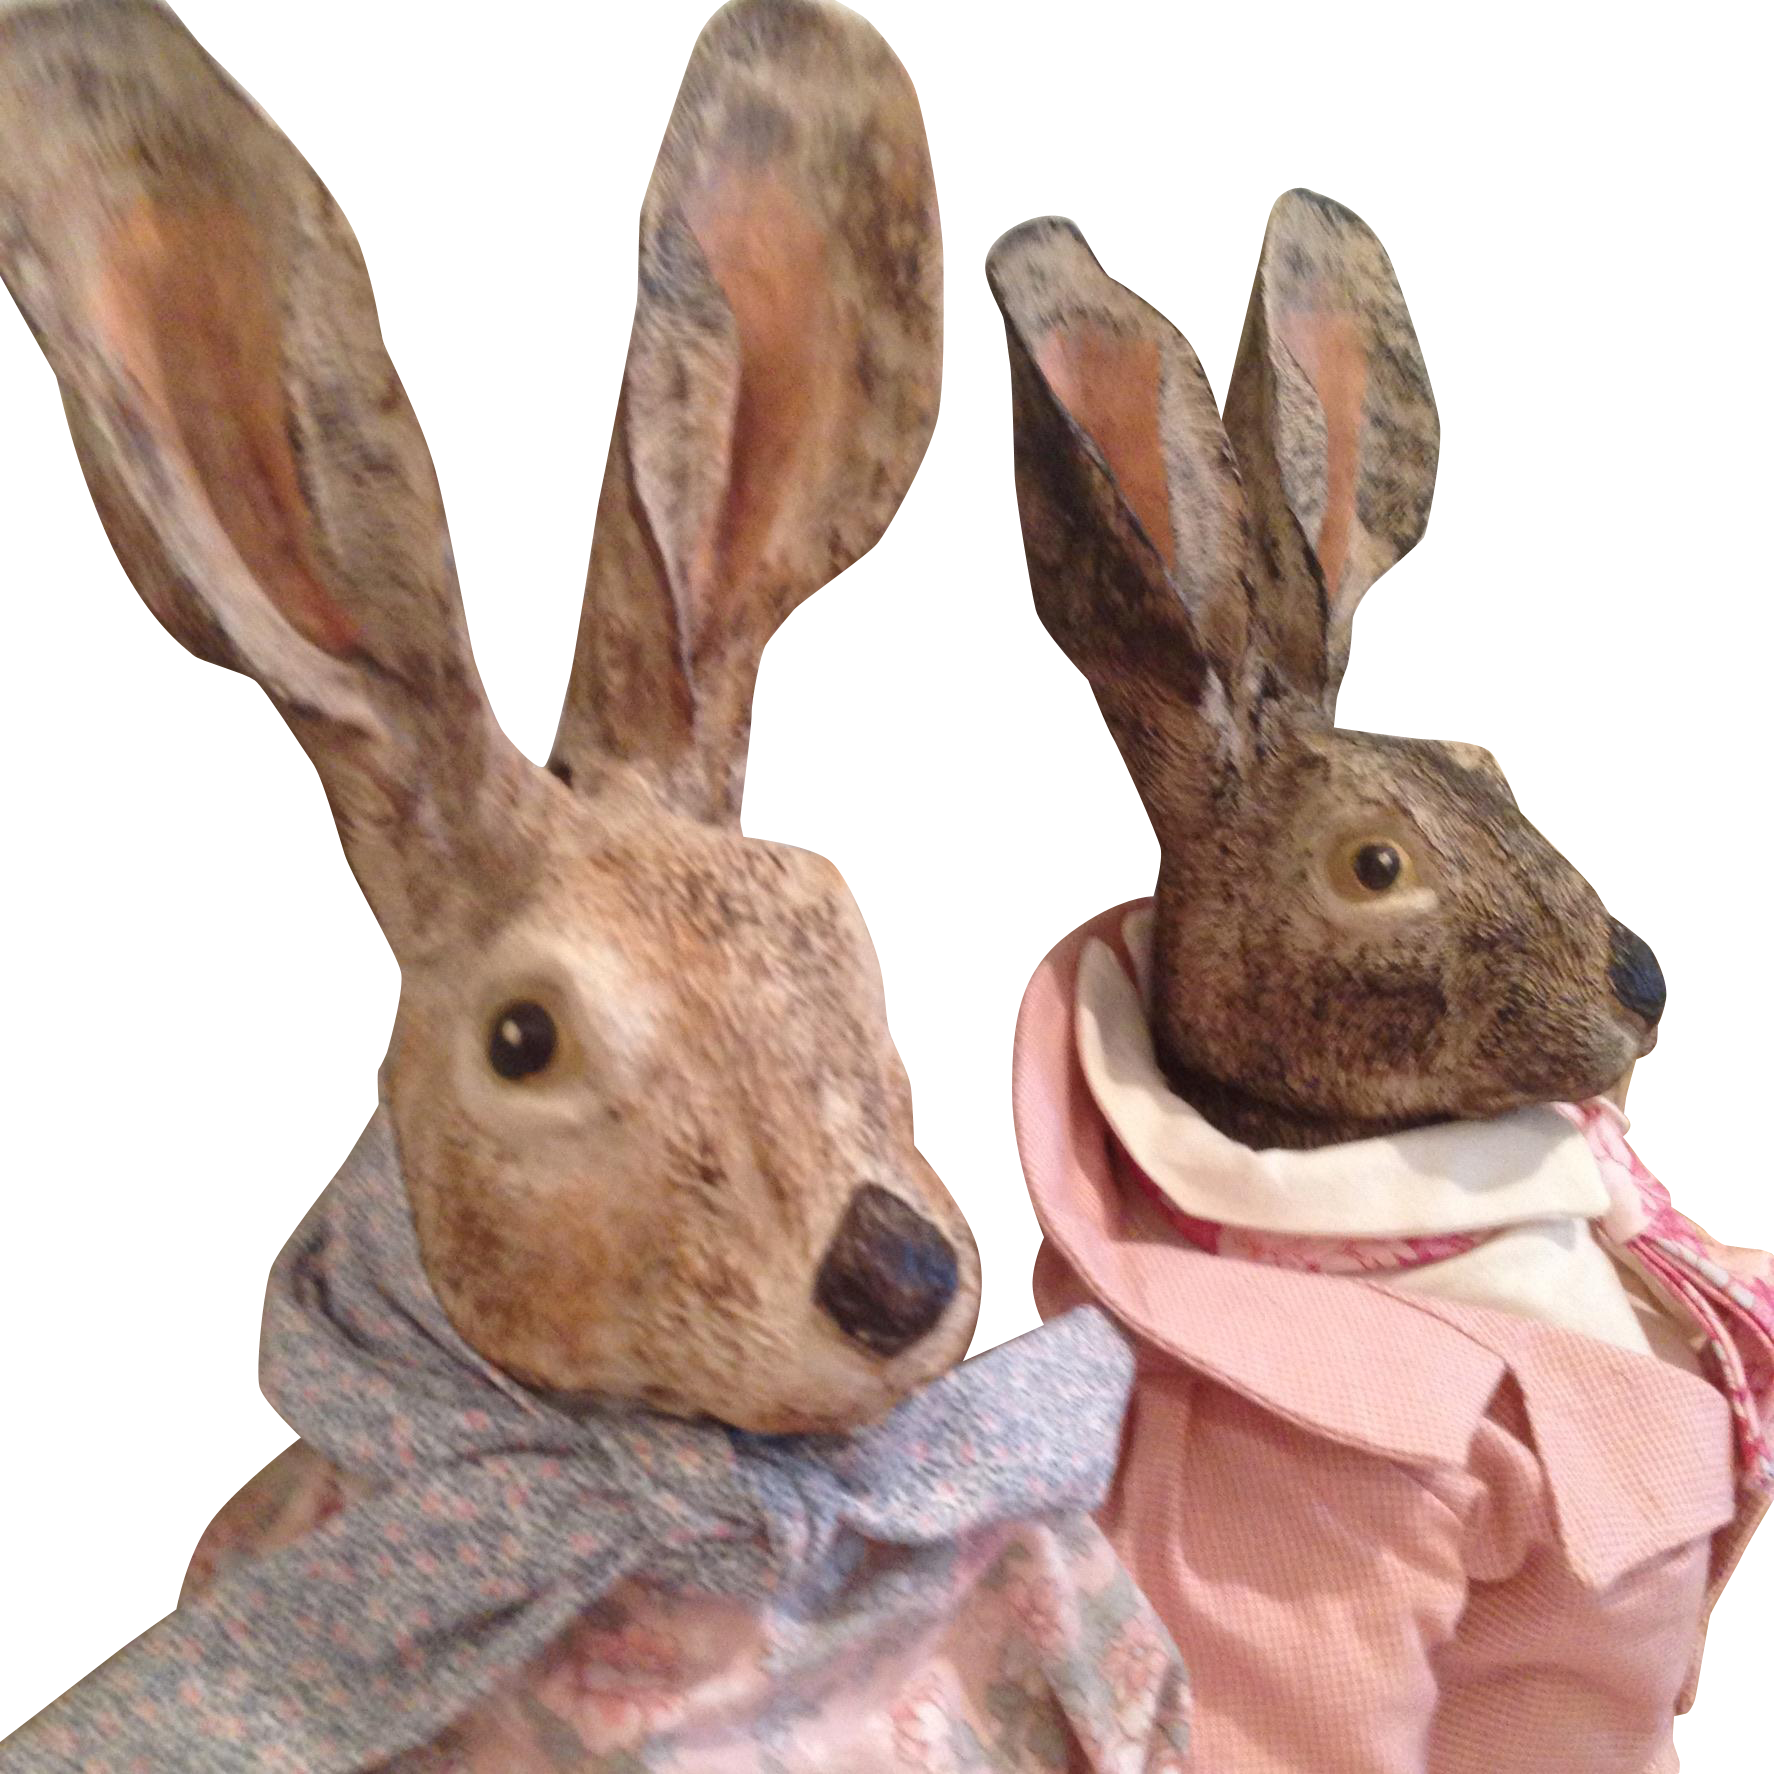 Magnificent Mr & Mrs Rabbit, Artist dolls